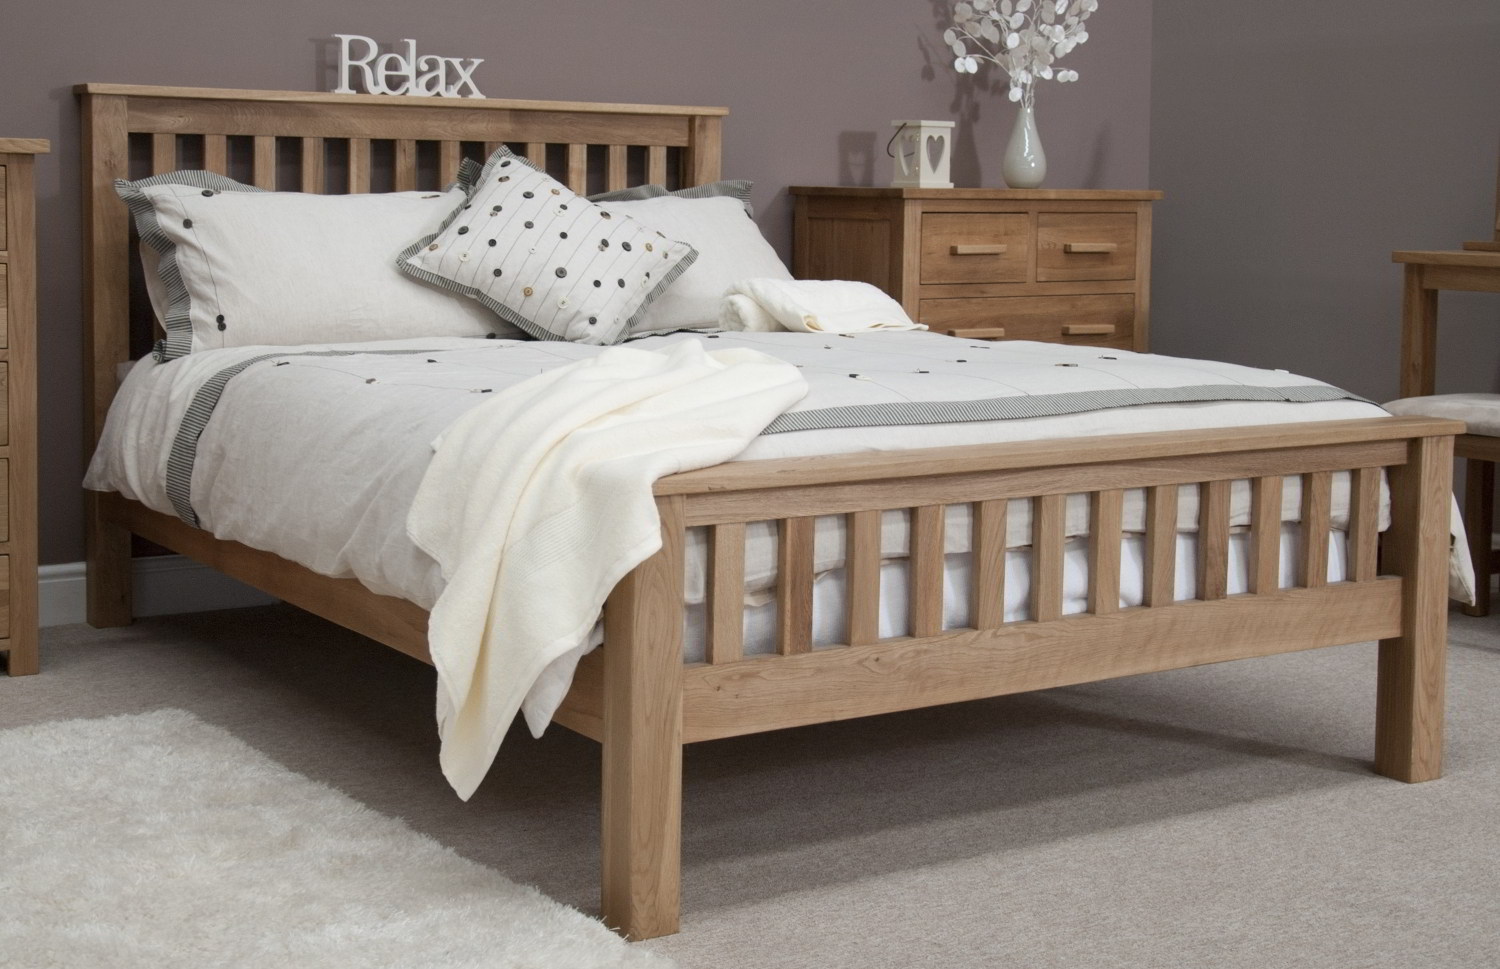 Eton solid contemporary oak bedroom furniture 5 39 king size - Contemporary king size bedroom furniture ...